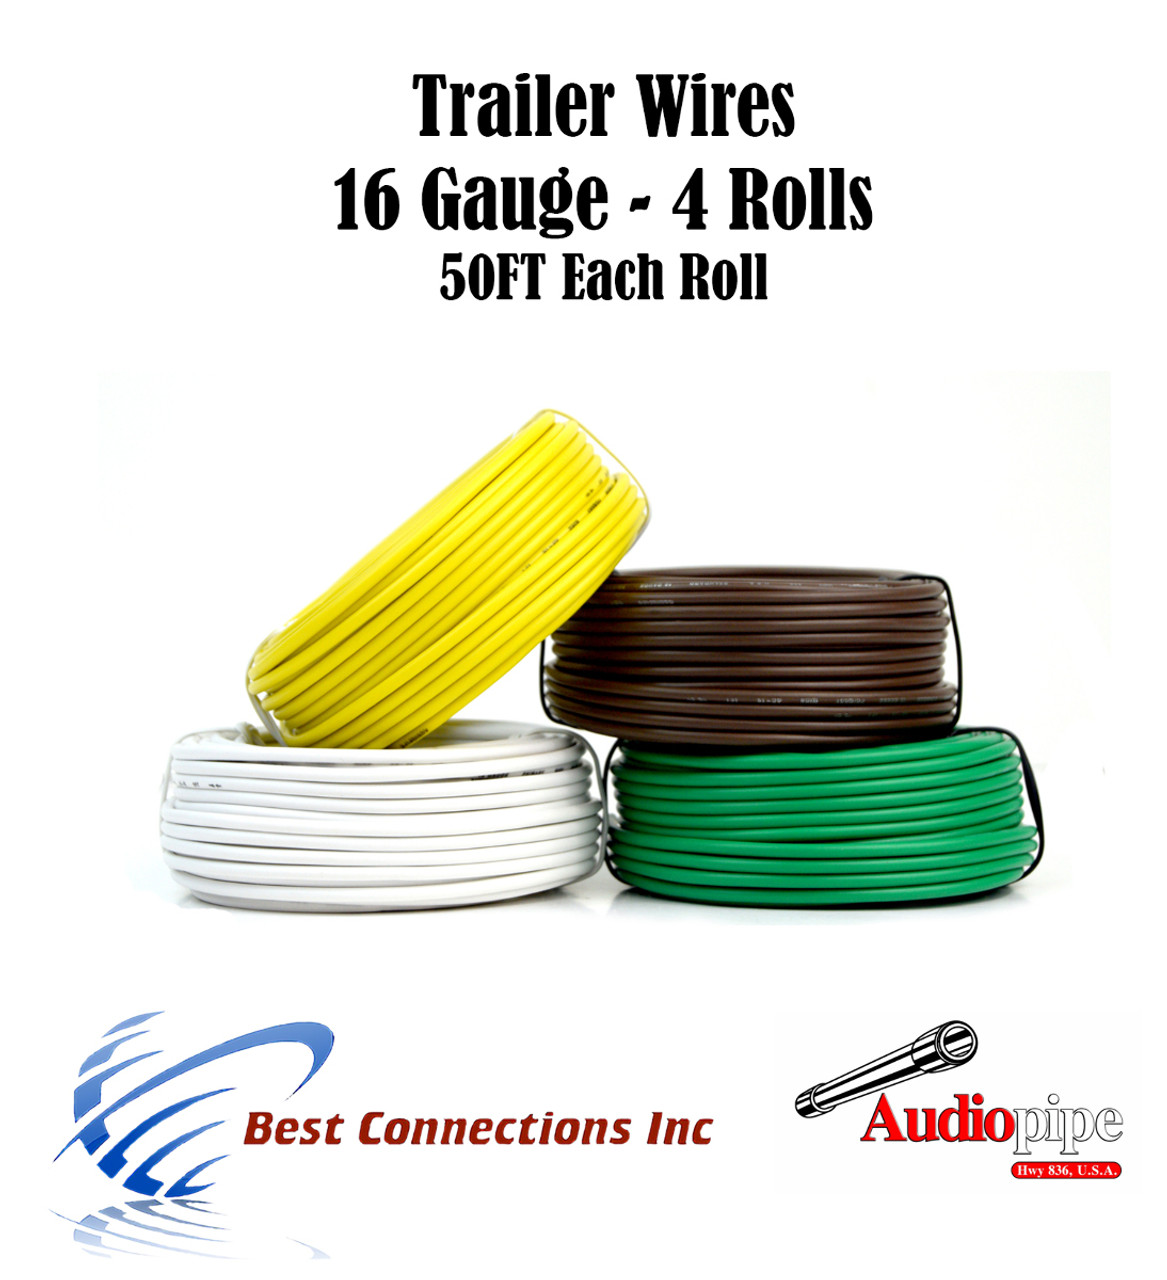 4 way trailer wire light cable for harness 50 ft each roll 16 gauge 4 colors [ 1094 x 1200 Pixel ]